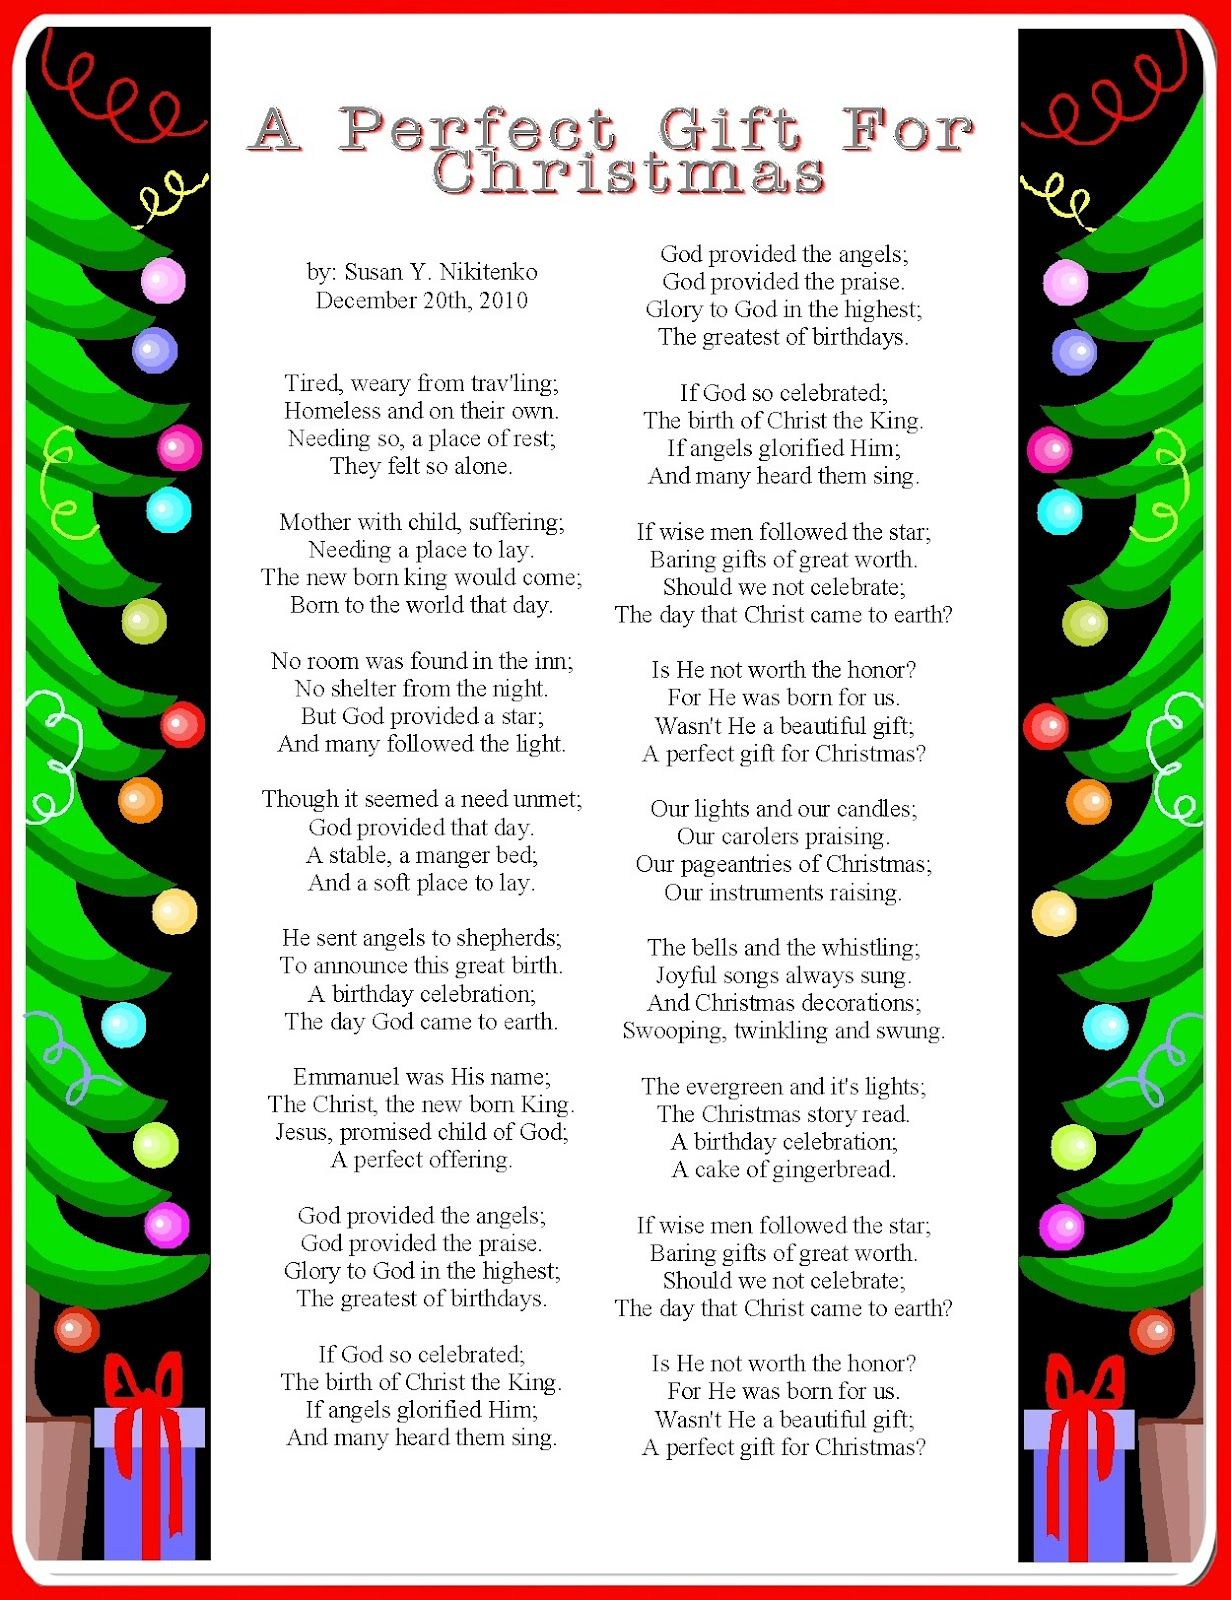 Christmas poems for church programs - My Treasure Box Christmas Poem Posters Updated January 2013